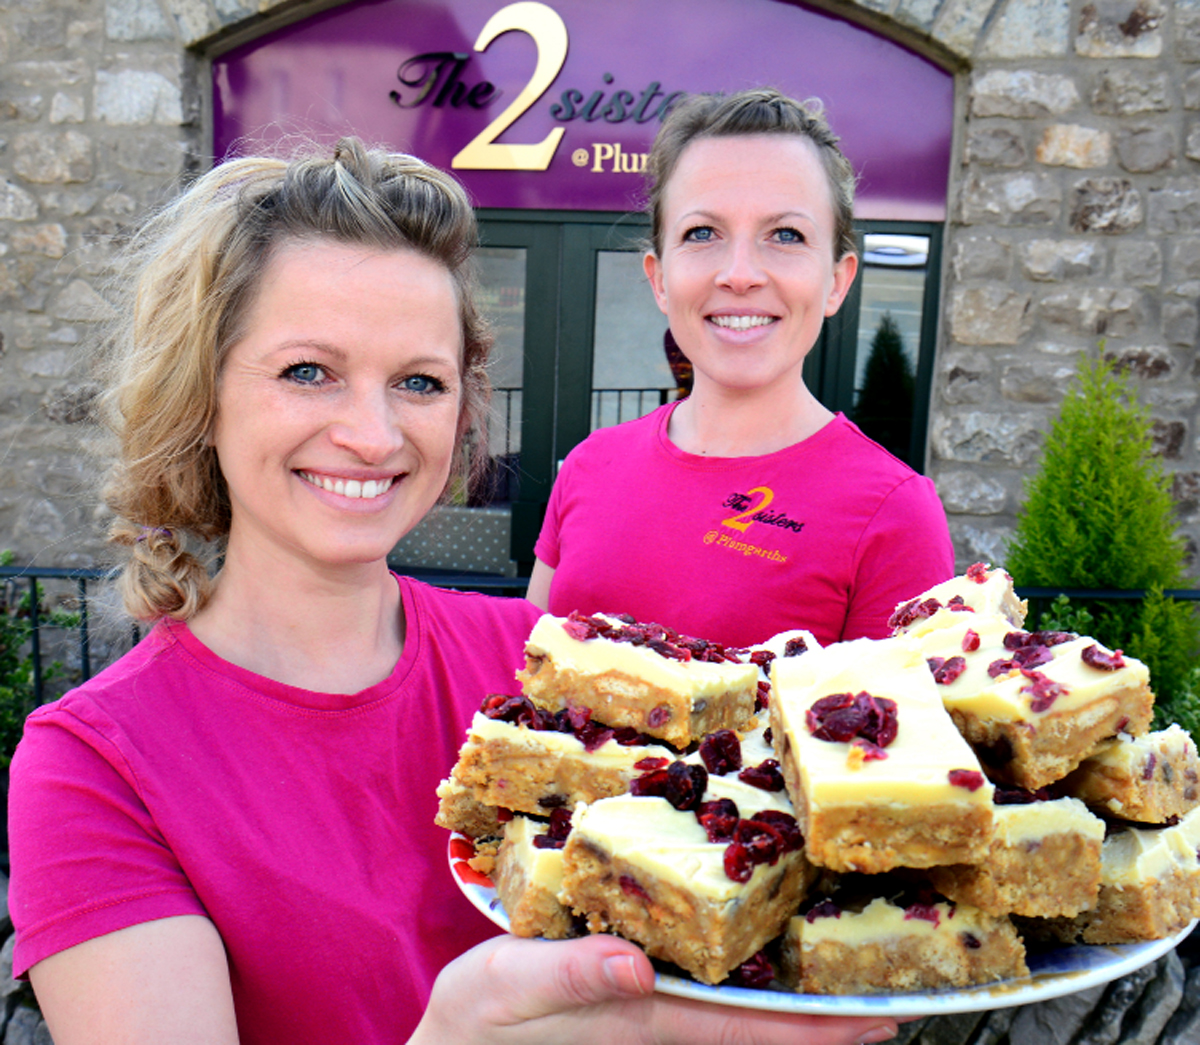 Winners announced of The Westmorland Gazette's Restaurant and Cafe of the Year 2014 awards